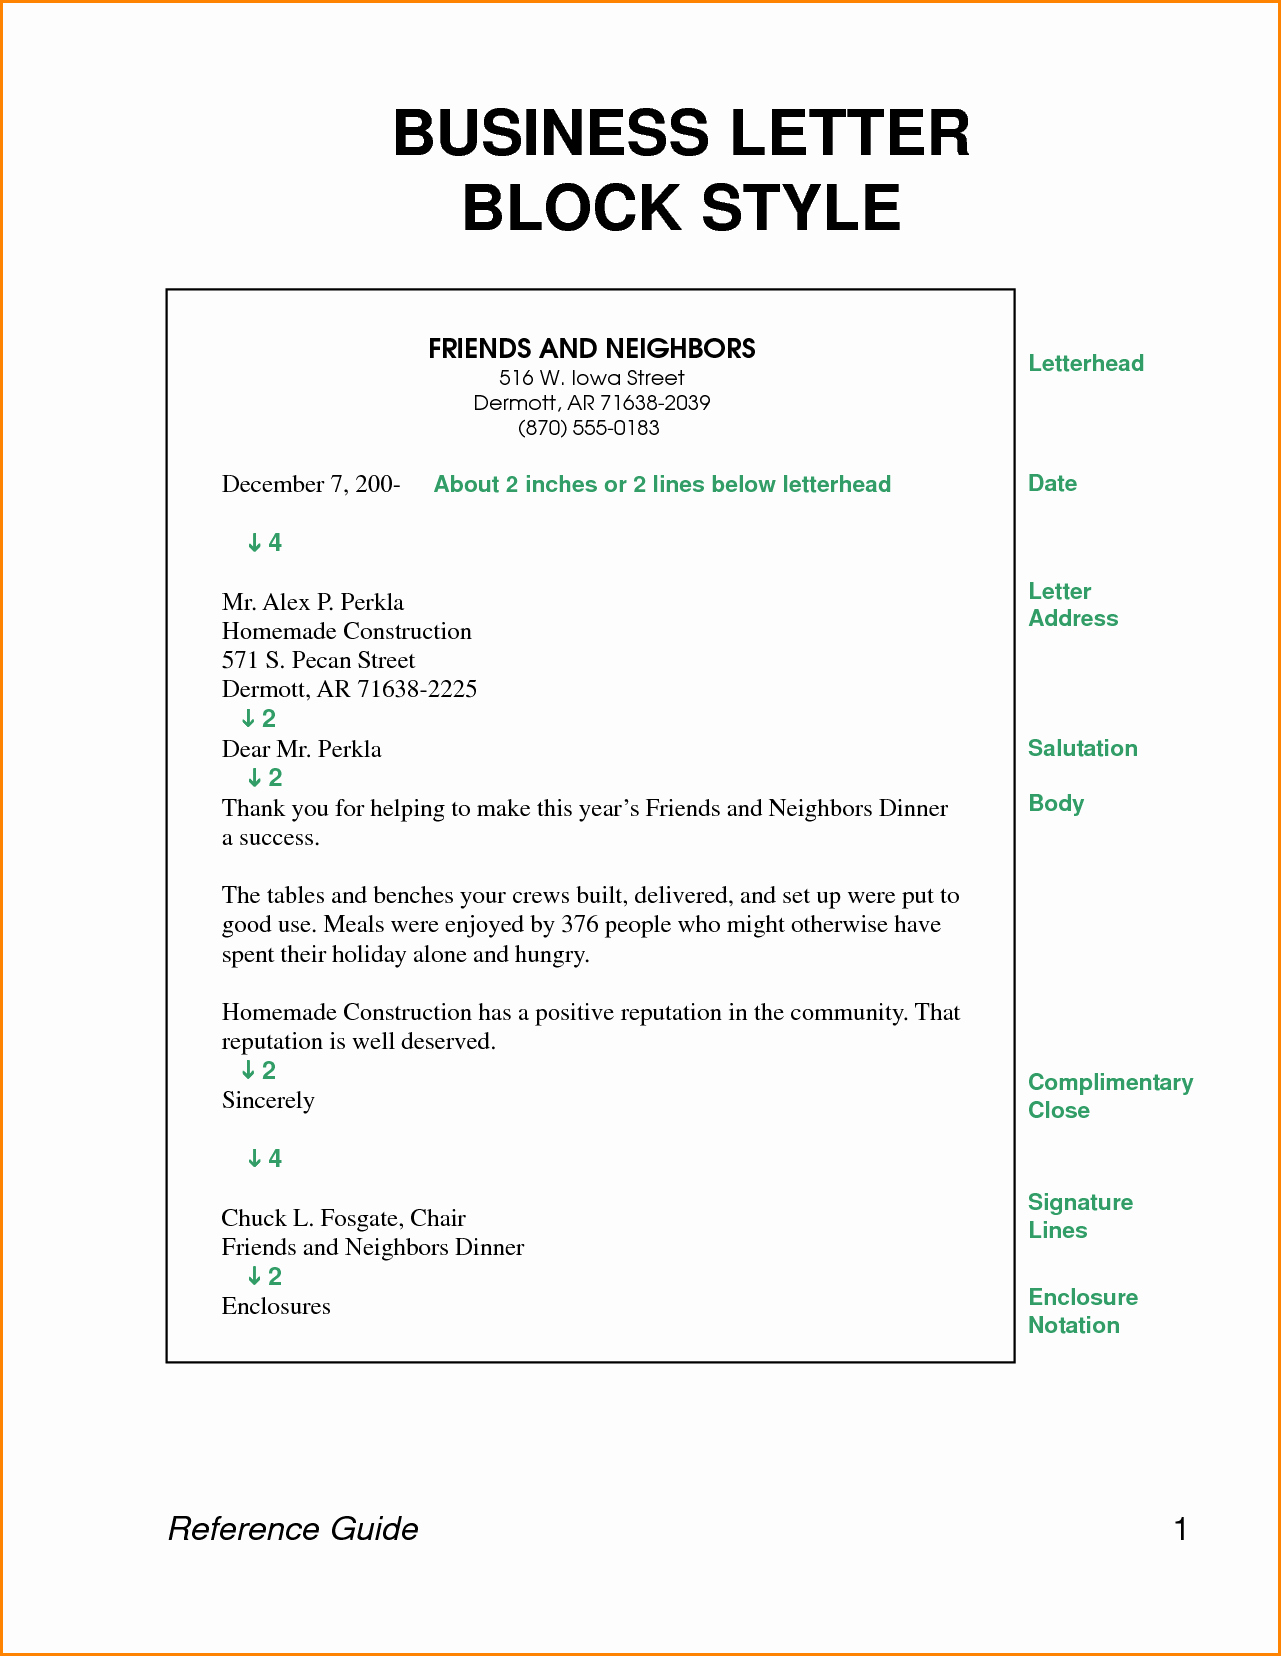 Formal Business Letter format Template Beautiful Business Letter Block Style Letters format Free